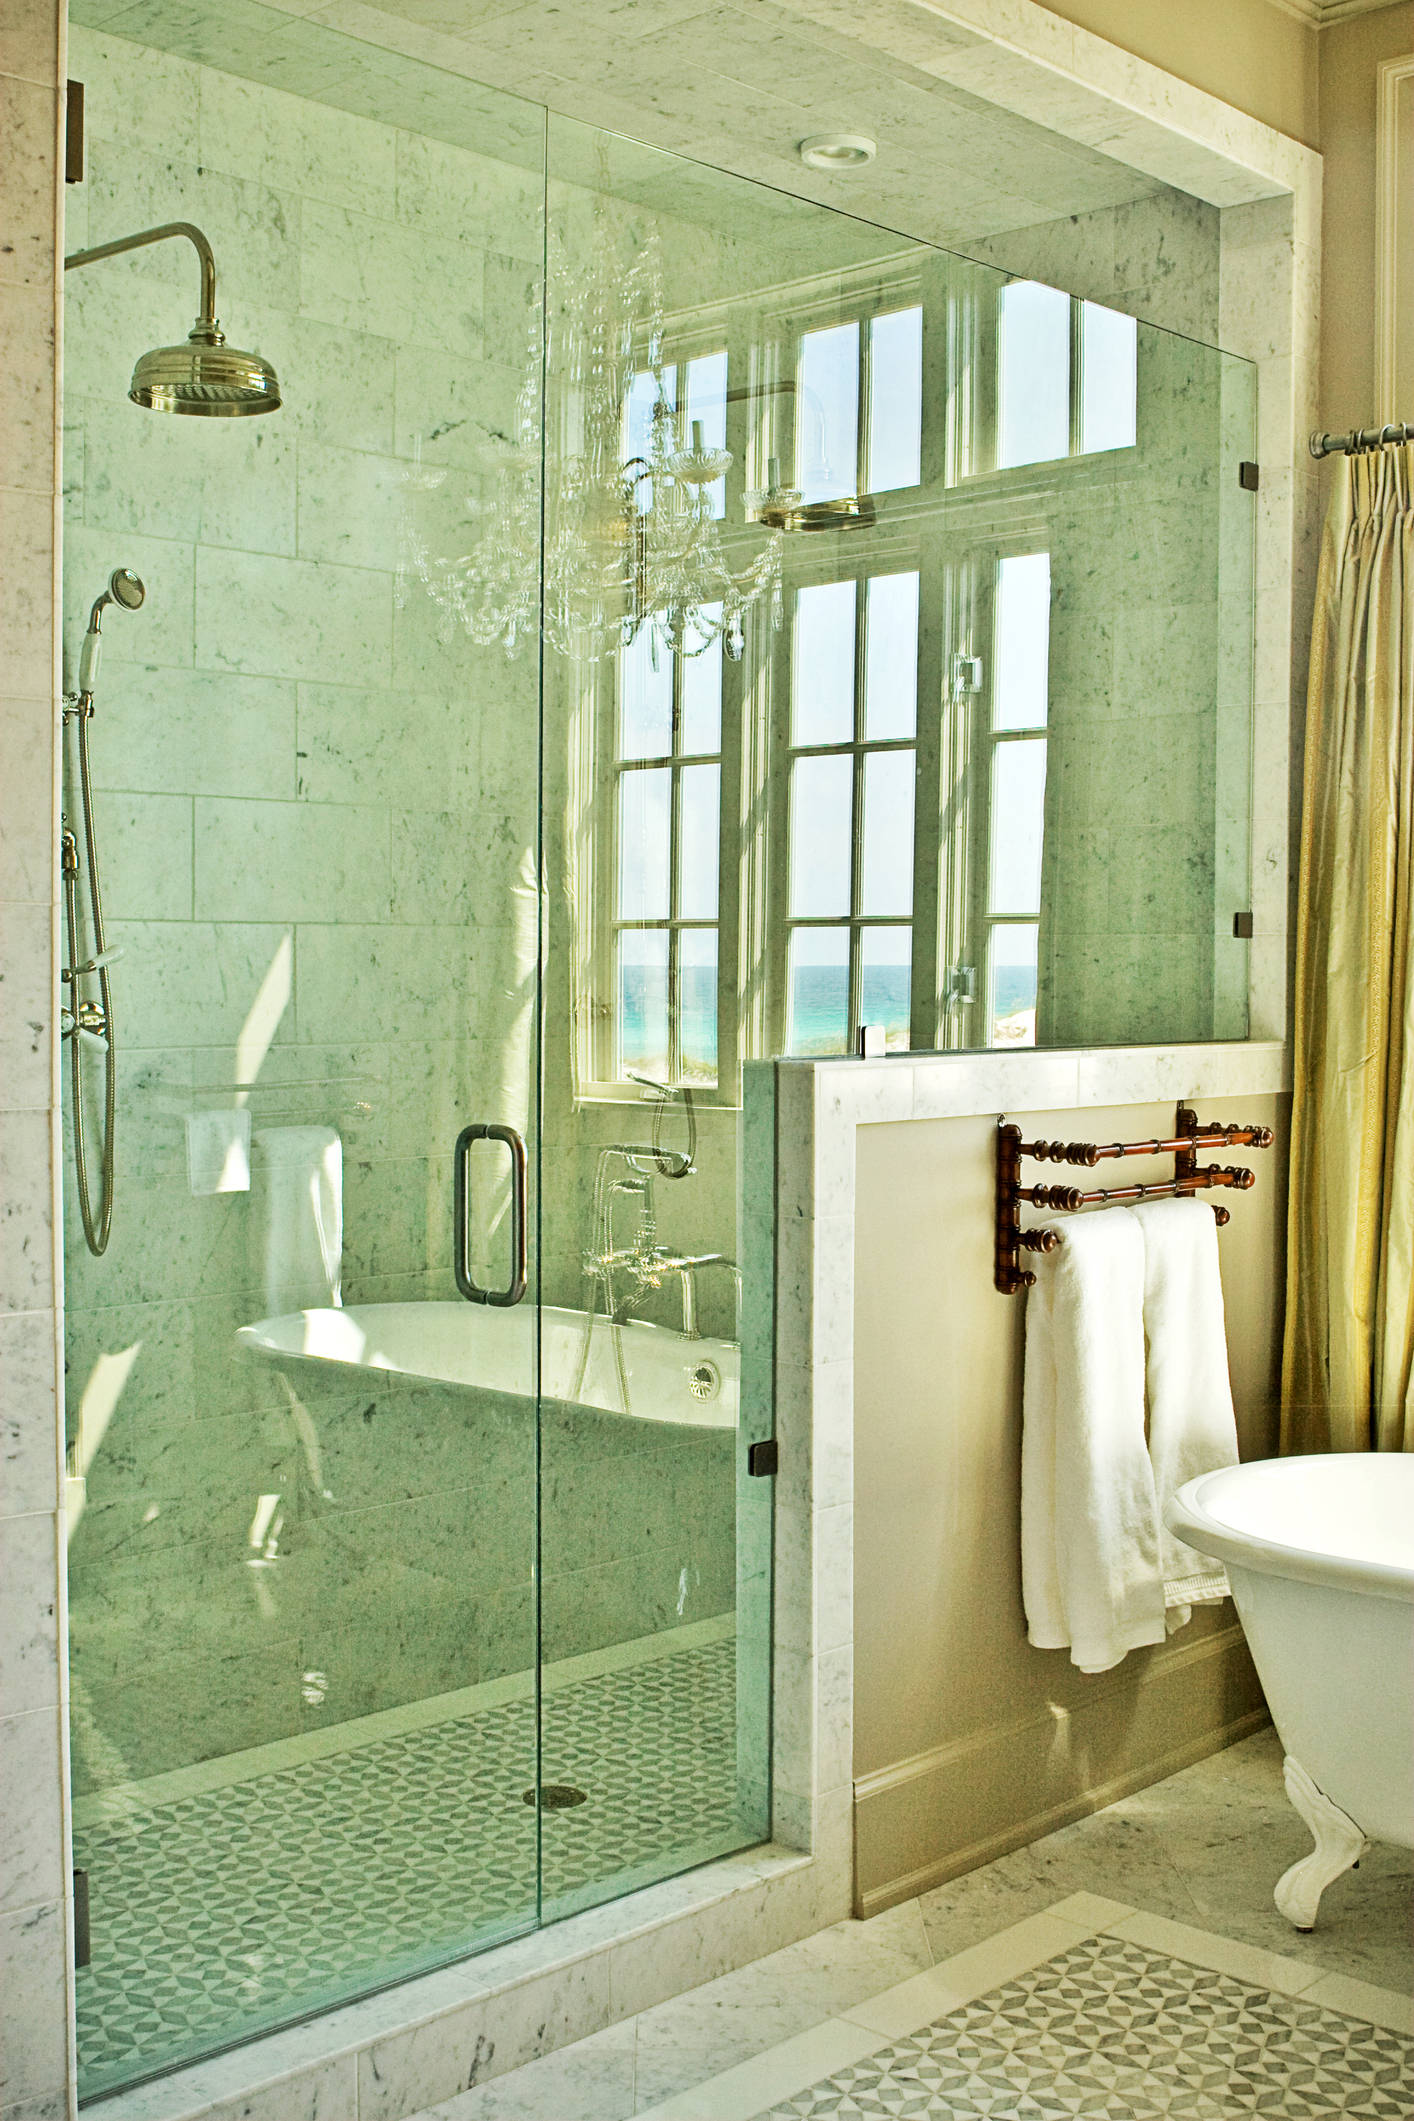 Glass shower enclosure ace glass glass shower enclosure planetlyrics Image collections